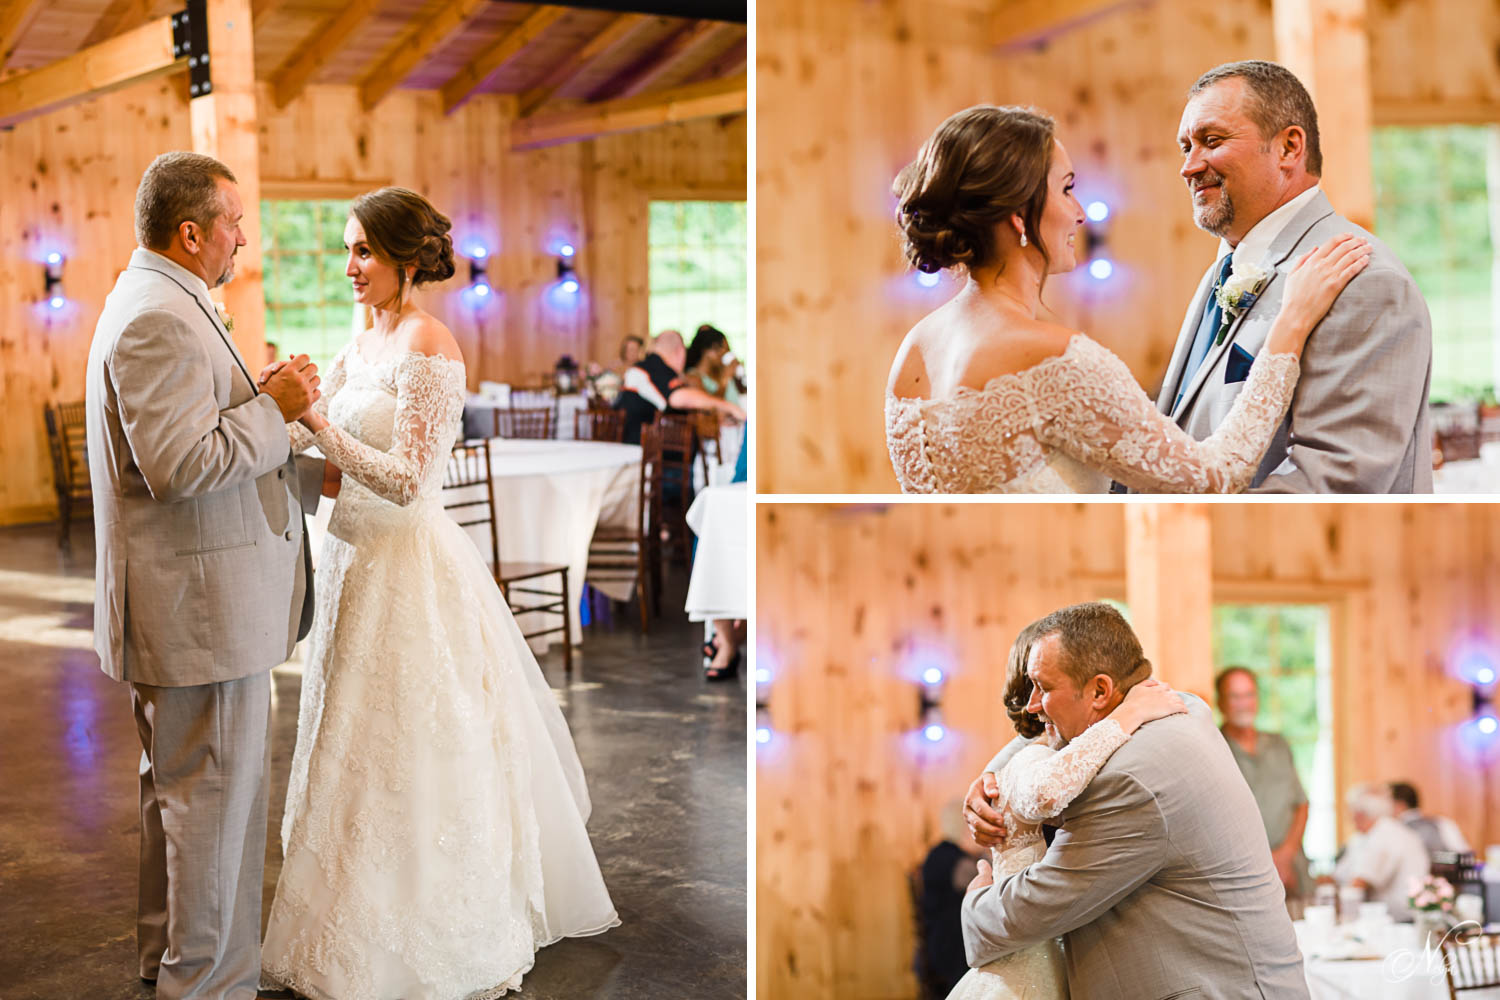 Dad and his daughter dancing the Farther daughter dance at her wedding in Sevierville Tn at 4 Points Farm